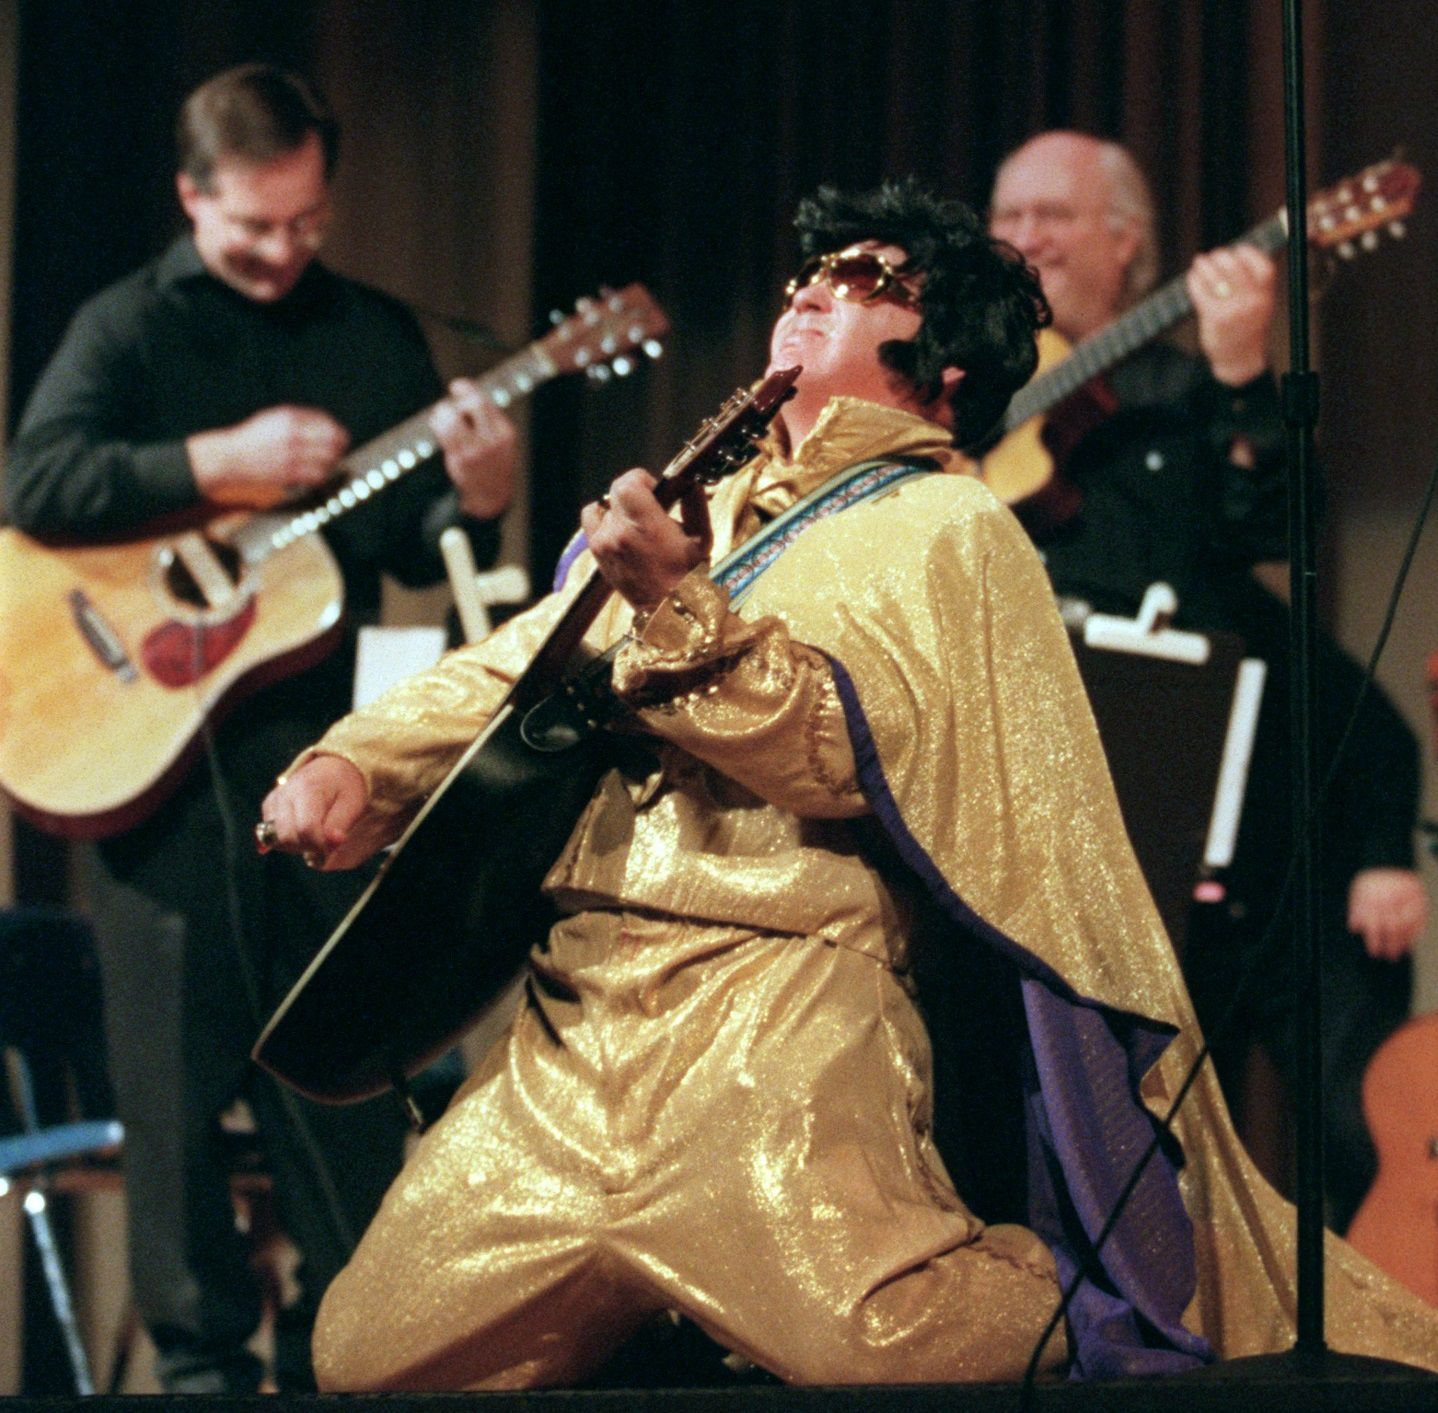 Coach Randy Allen performed an Elvis routine during the first 'HP Unplugged' music variety show featuring school faculty at Highland Park High School.